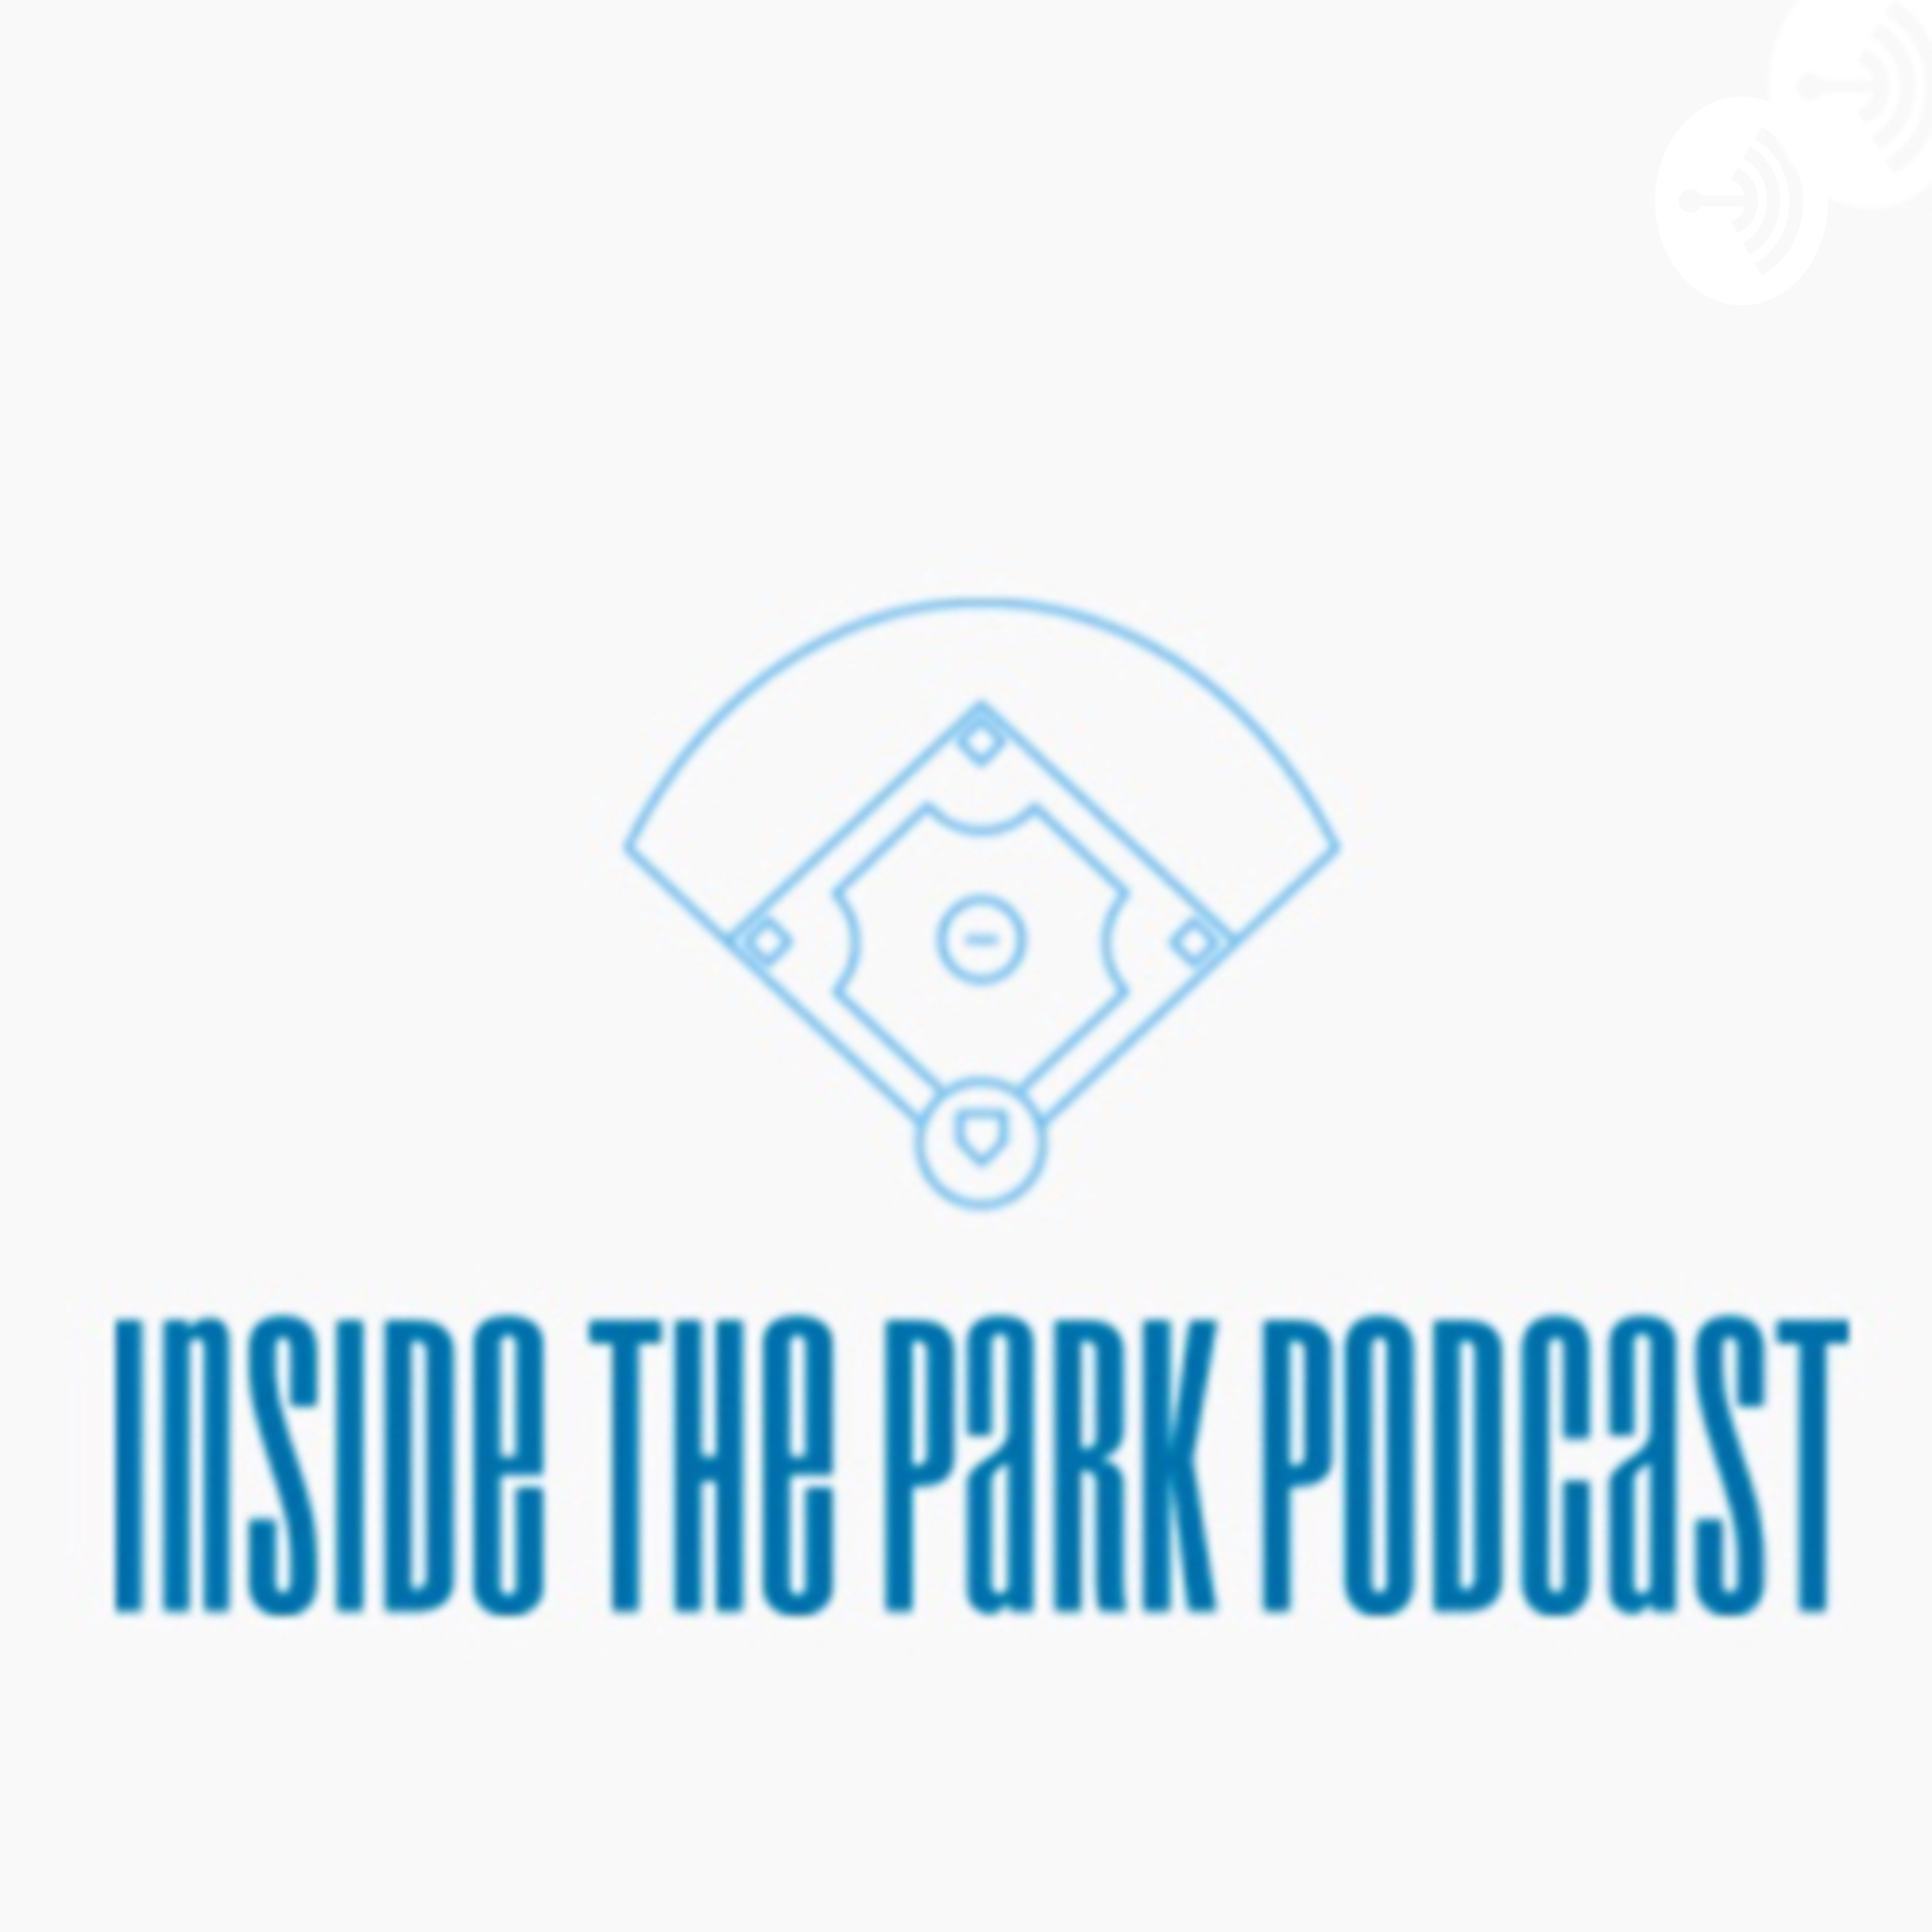 Inside The Park Podcast | Listen via Stitcher for Podcasts